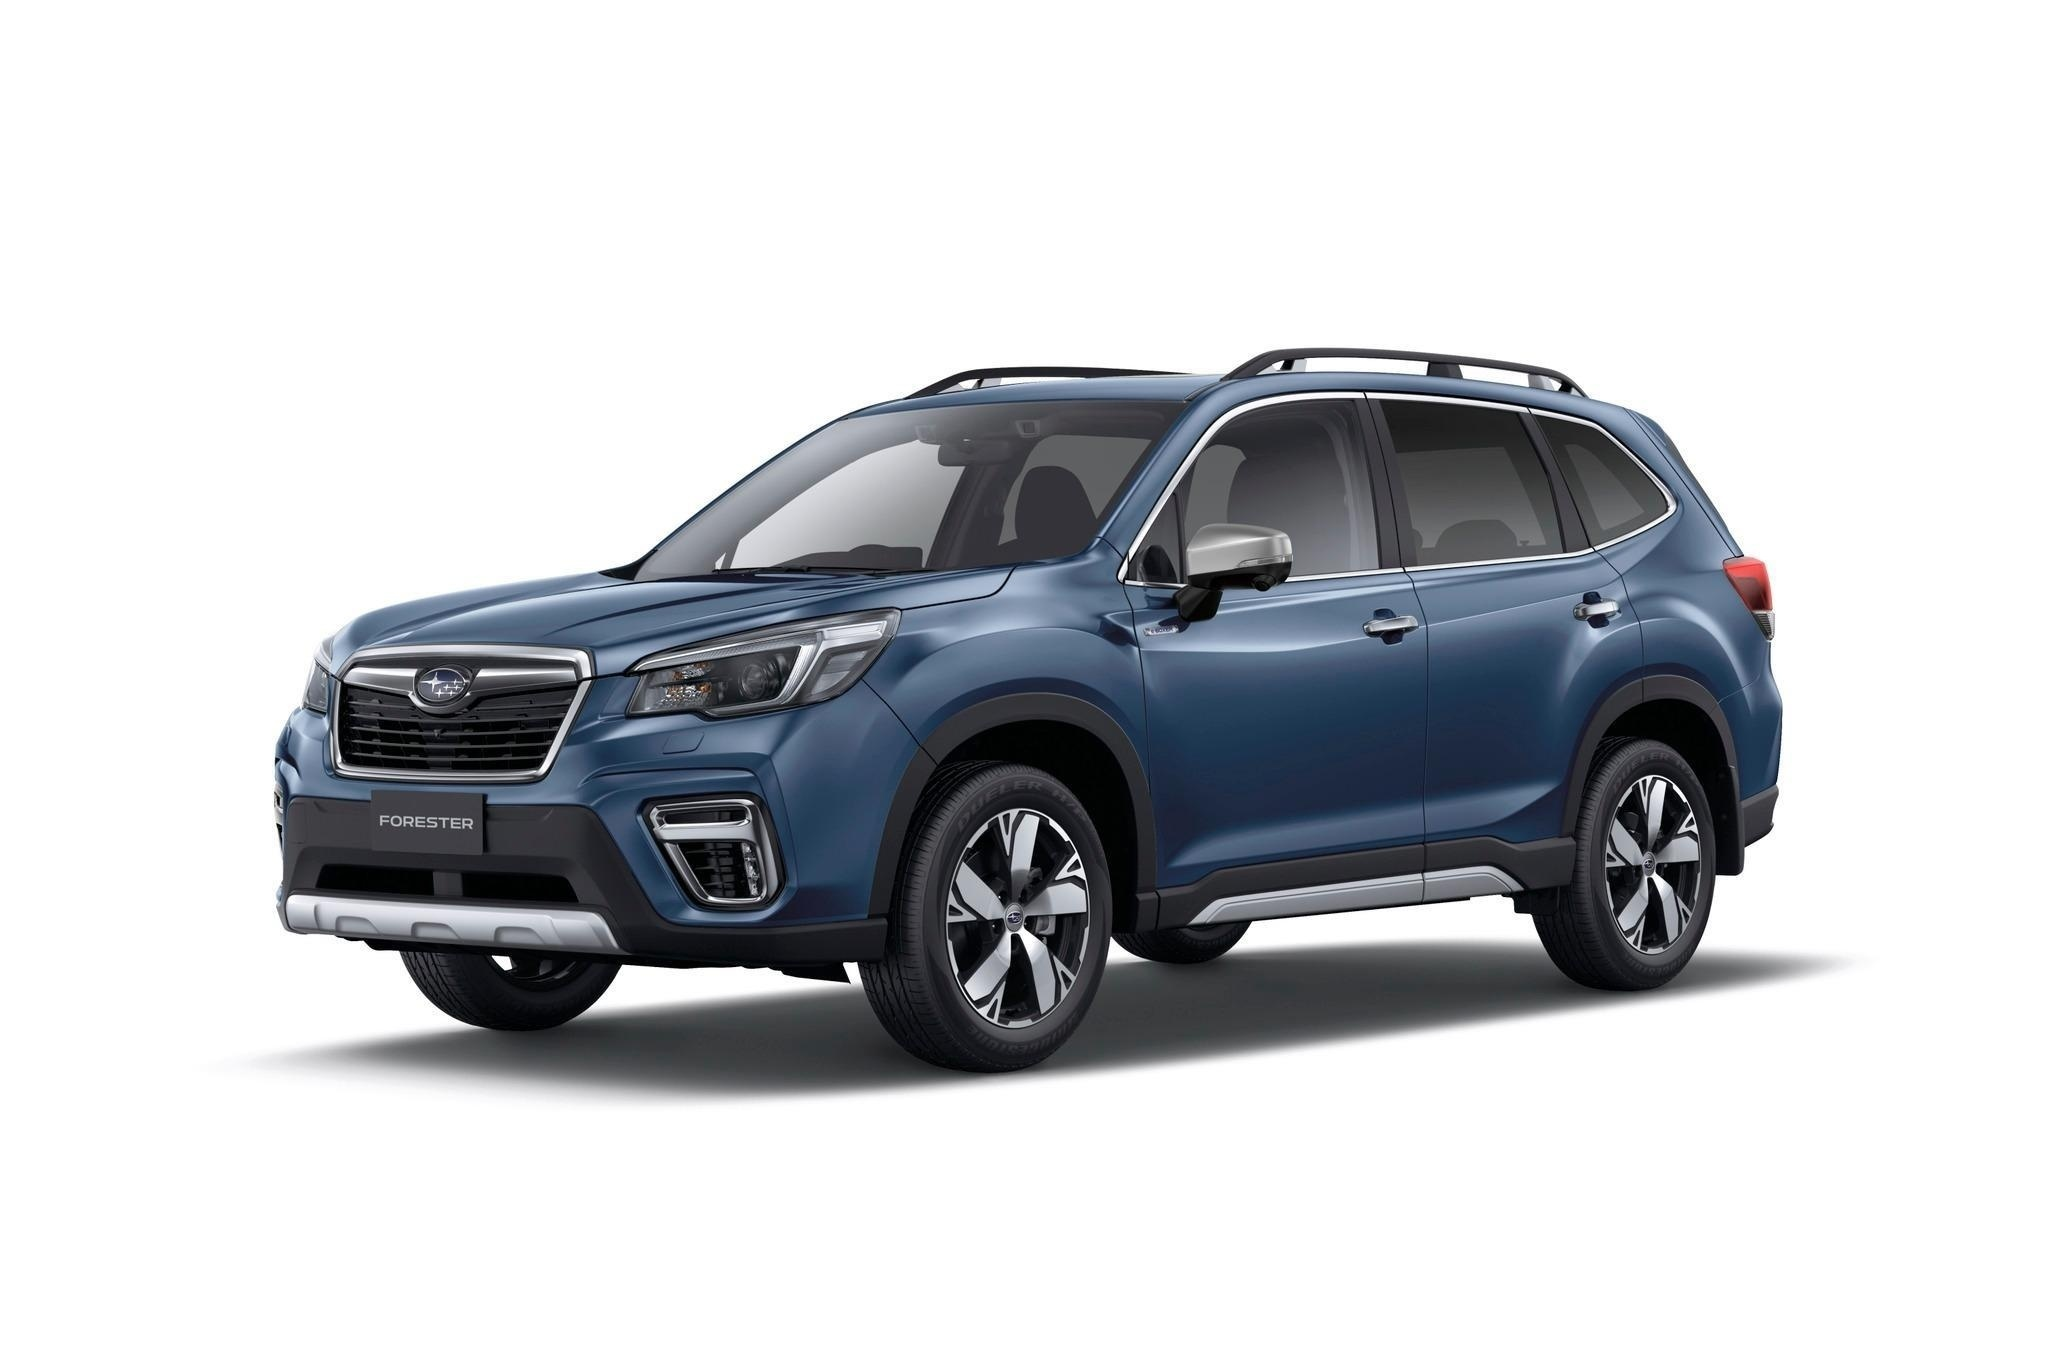 2021 Subaru Forester HYBRID S MY21 / Automatic (CVT) / Wagon / 2.0L / 4 Cylinder / Petrol / Electric / 4x4 / 4 door / Model Year '21 September release 088921